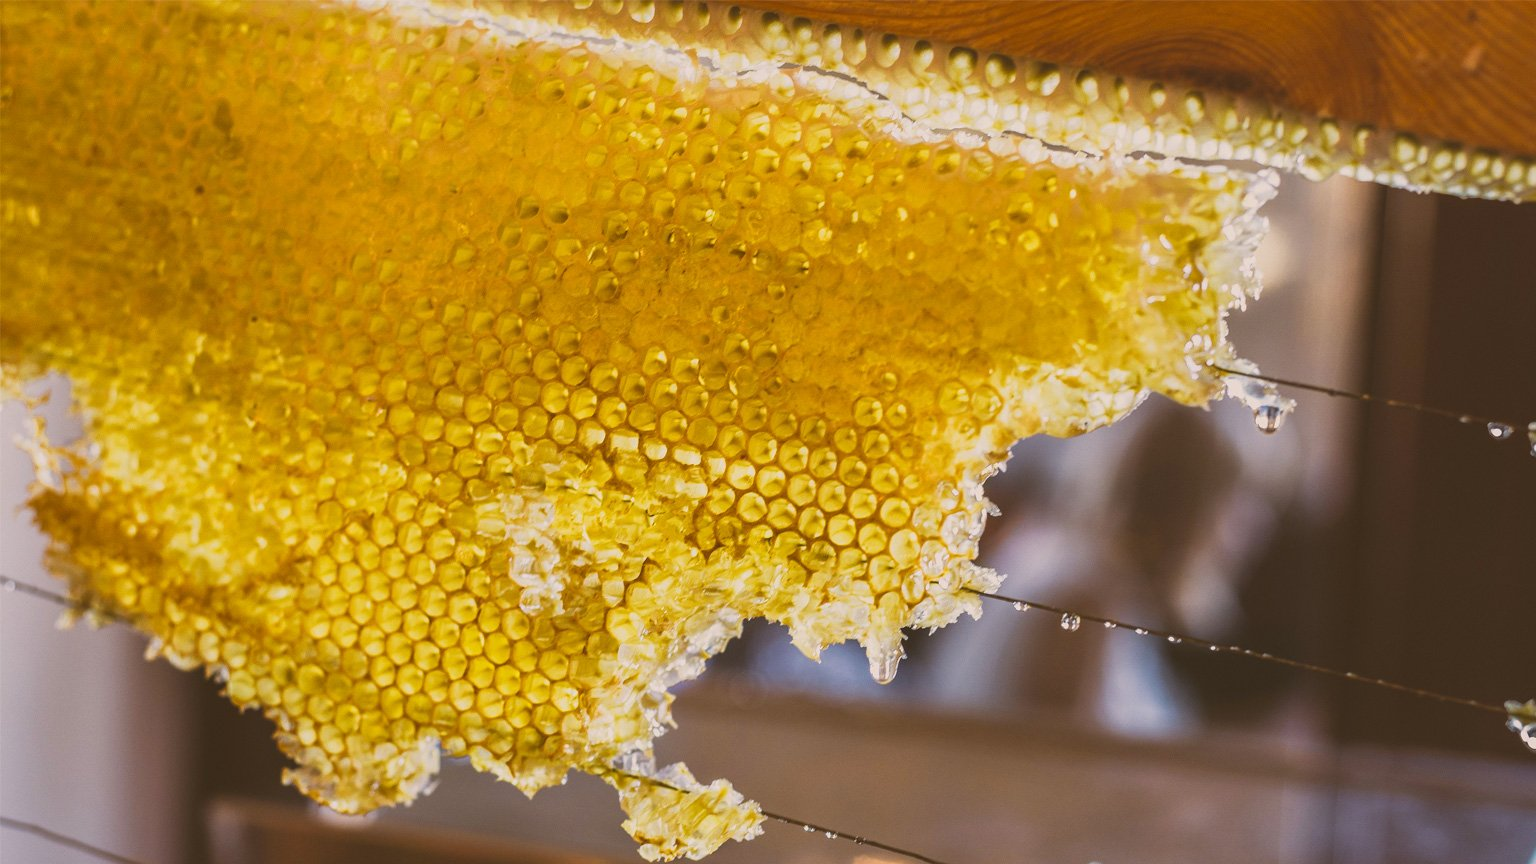 The World of Food: Honey